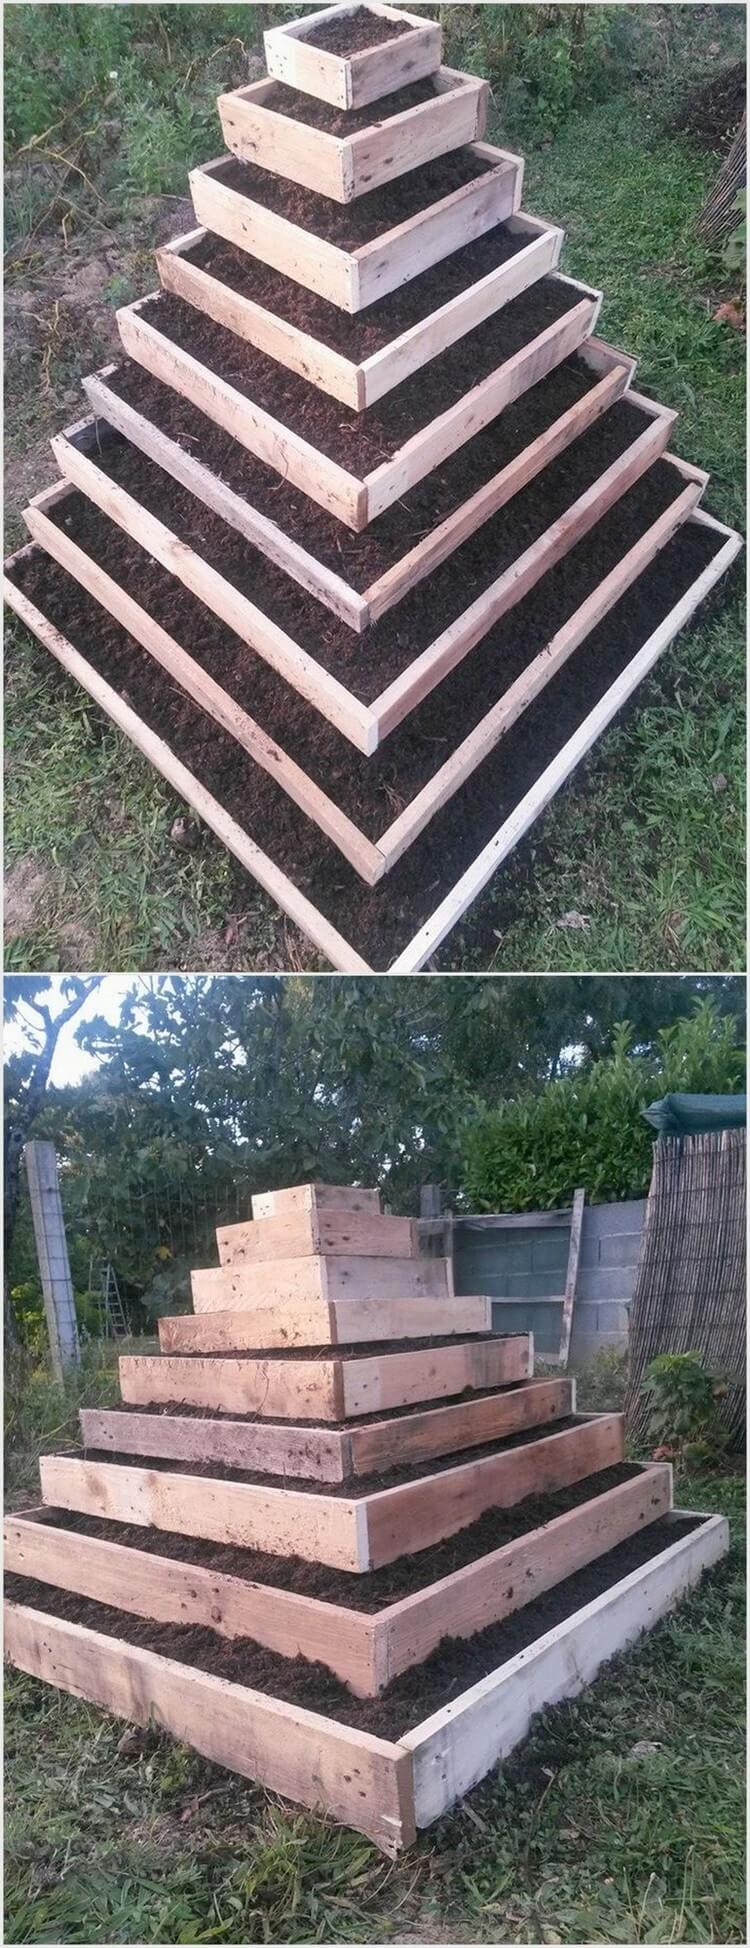 Prodigious Ideas of Wooden Pallet Recycling | Pallet Wood ...